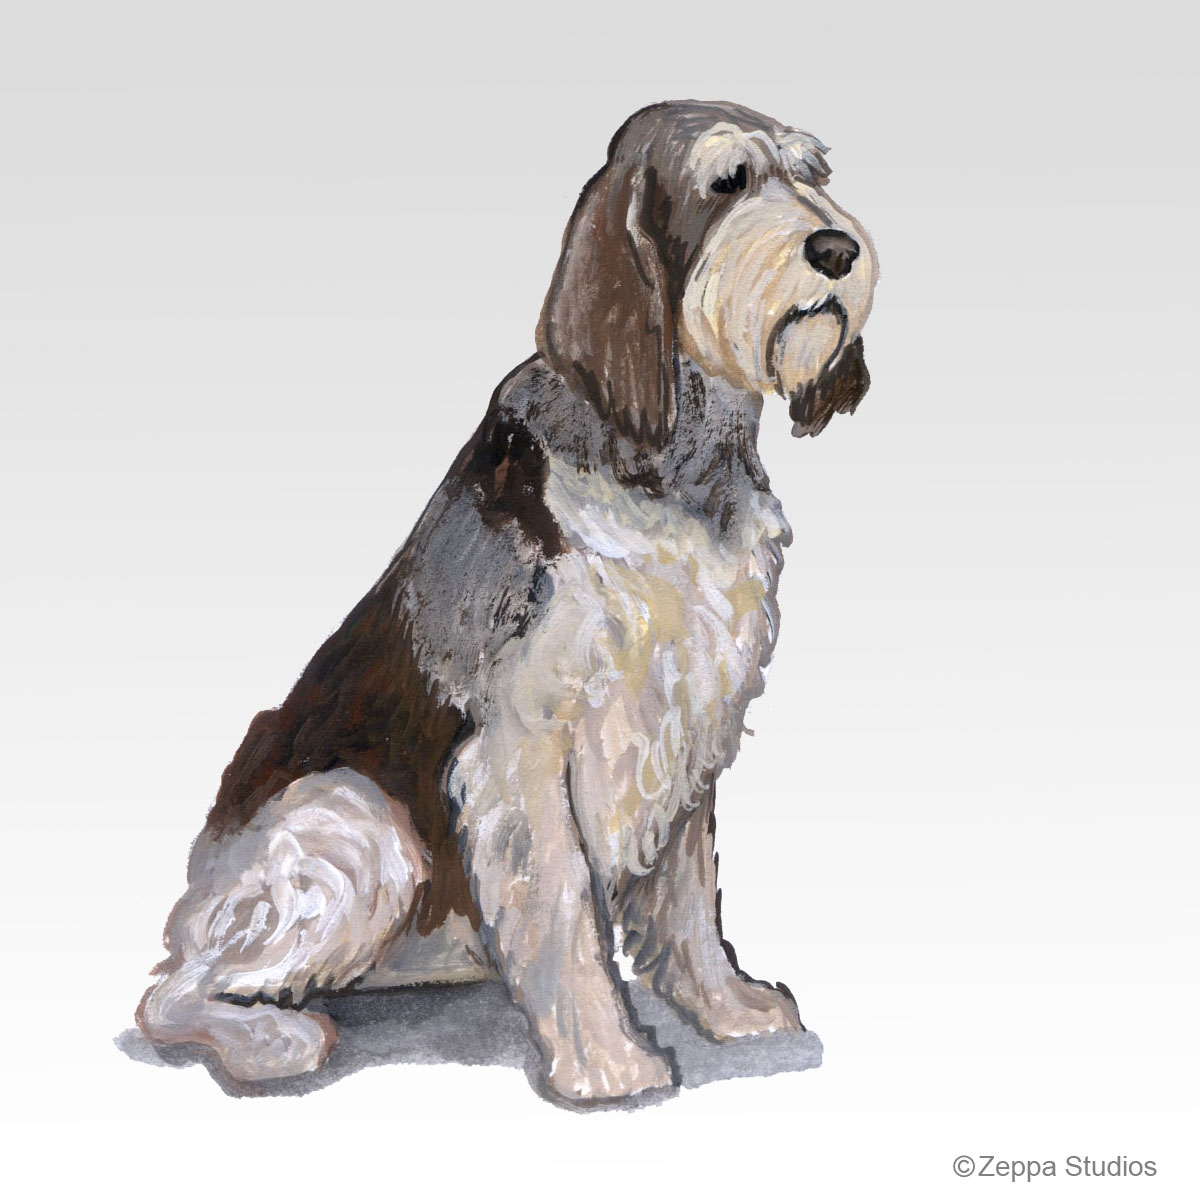 Italian Spinone Gifts